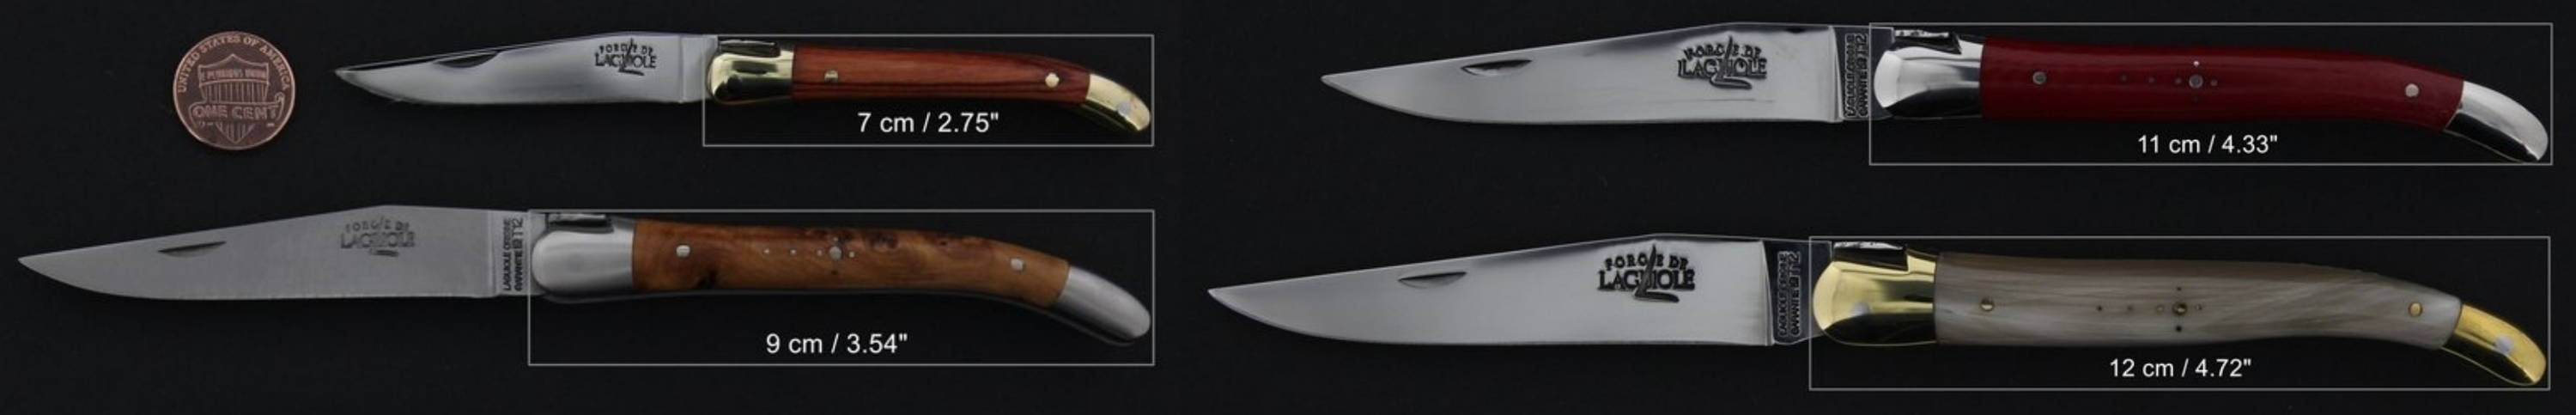 Laguiole Knives sizes